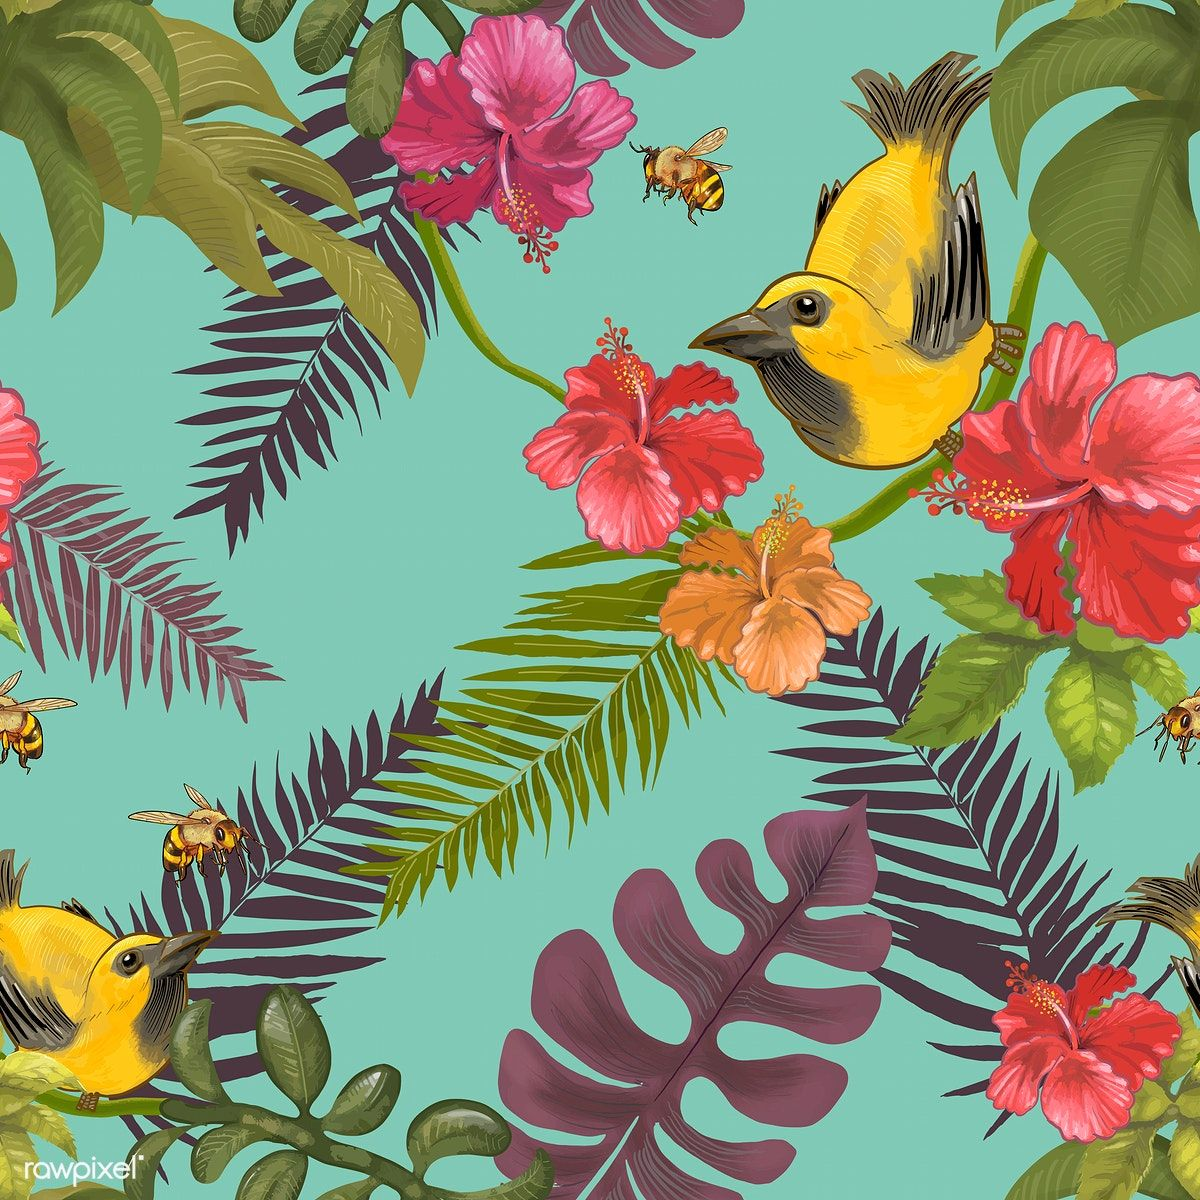 Tropical Floral Background With Birds And Bees Free Image By